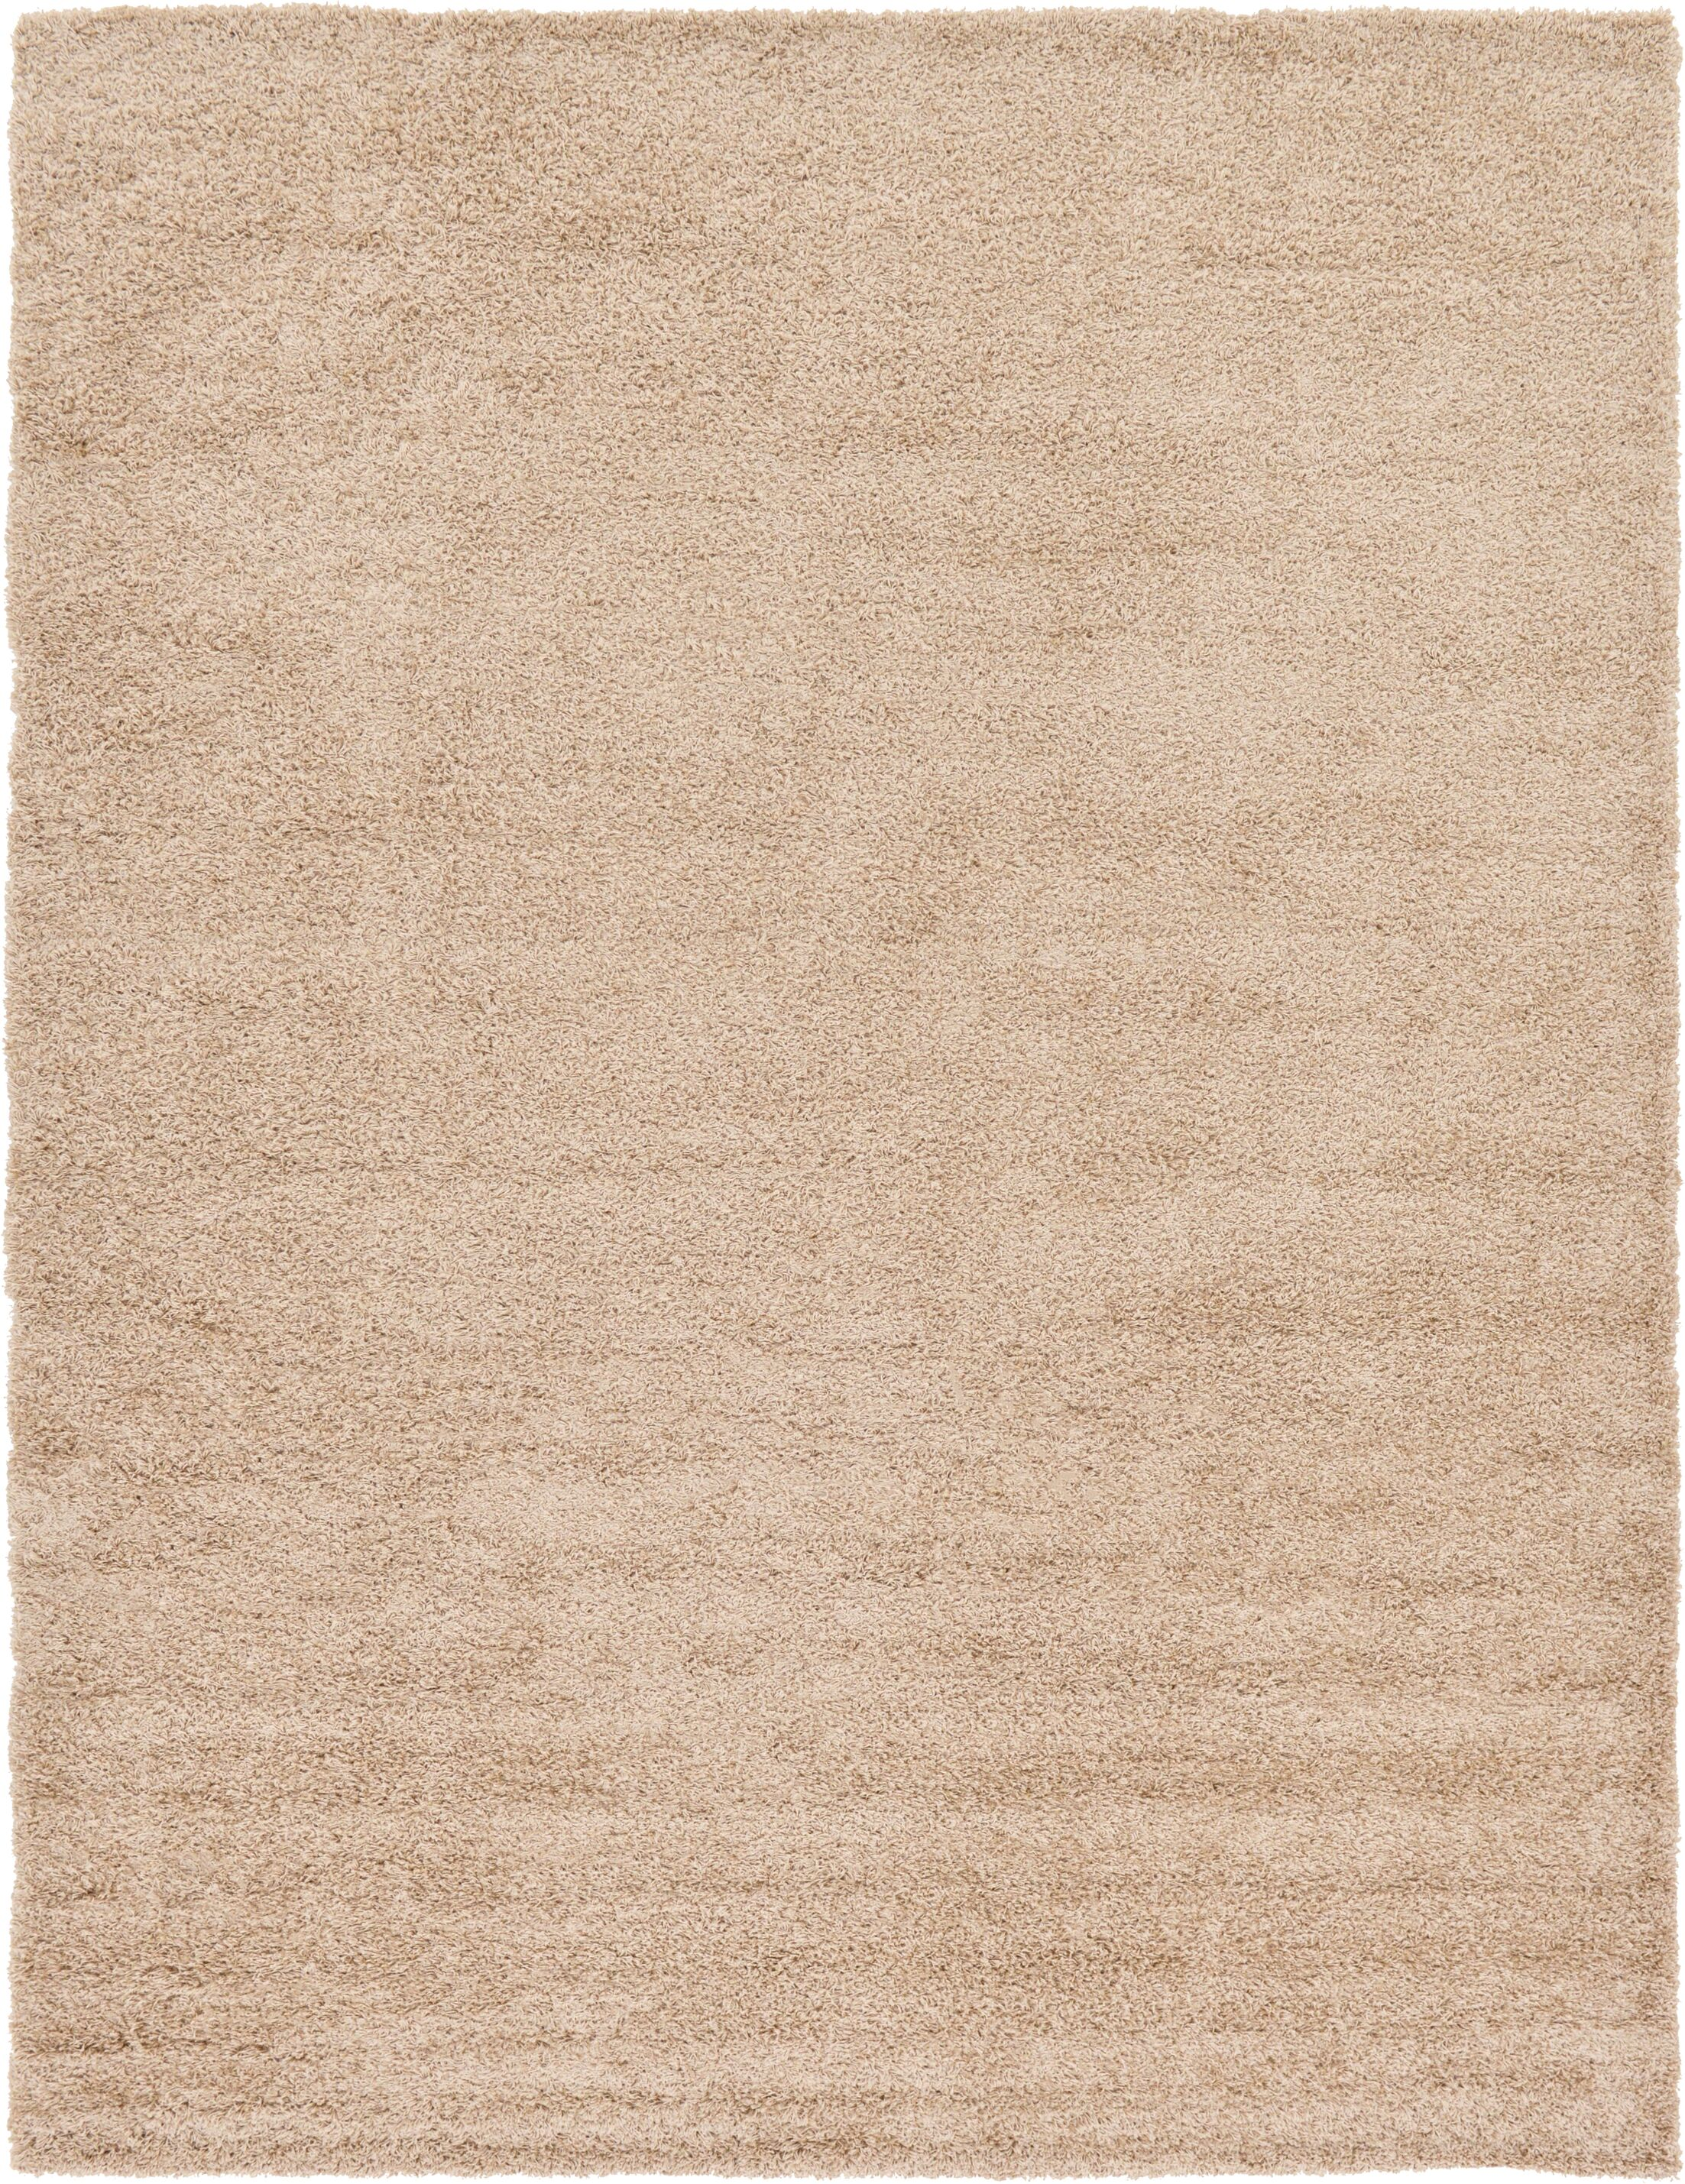 Ethelyn Lilah Area Rug Rug Size: Rectangle 10' x 13'